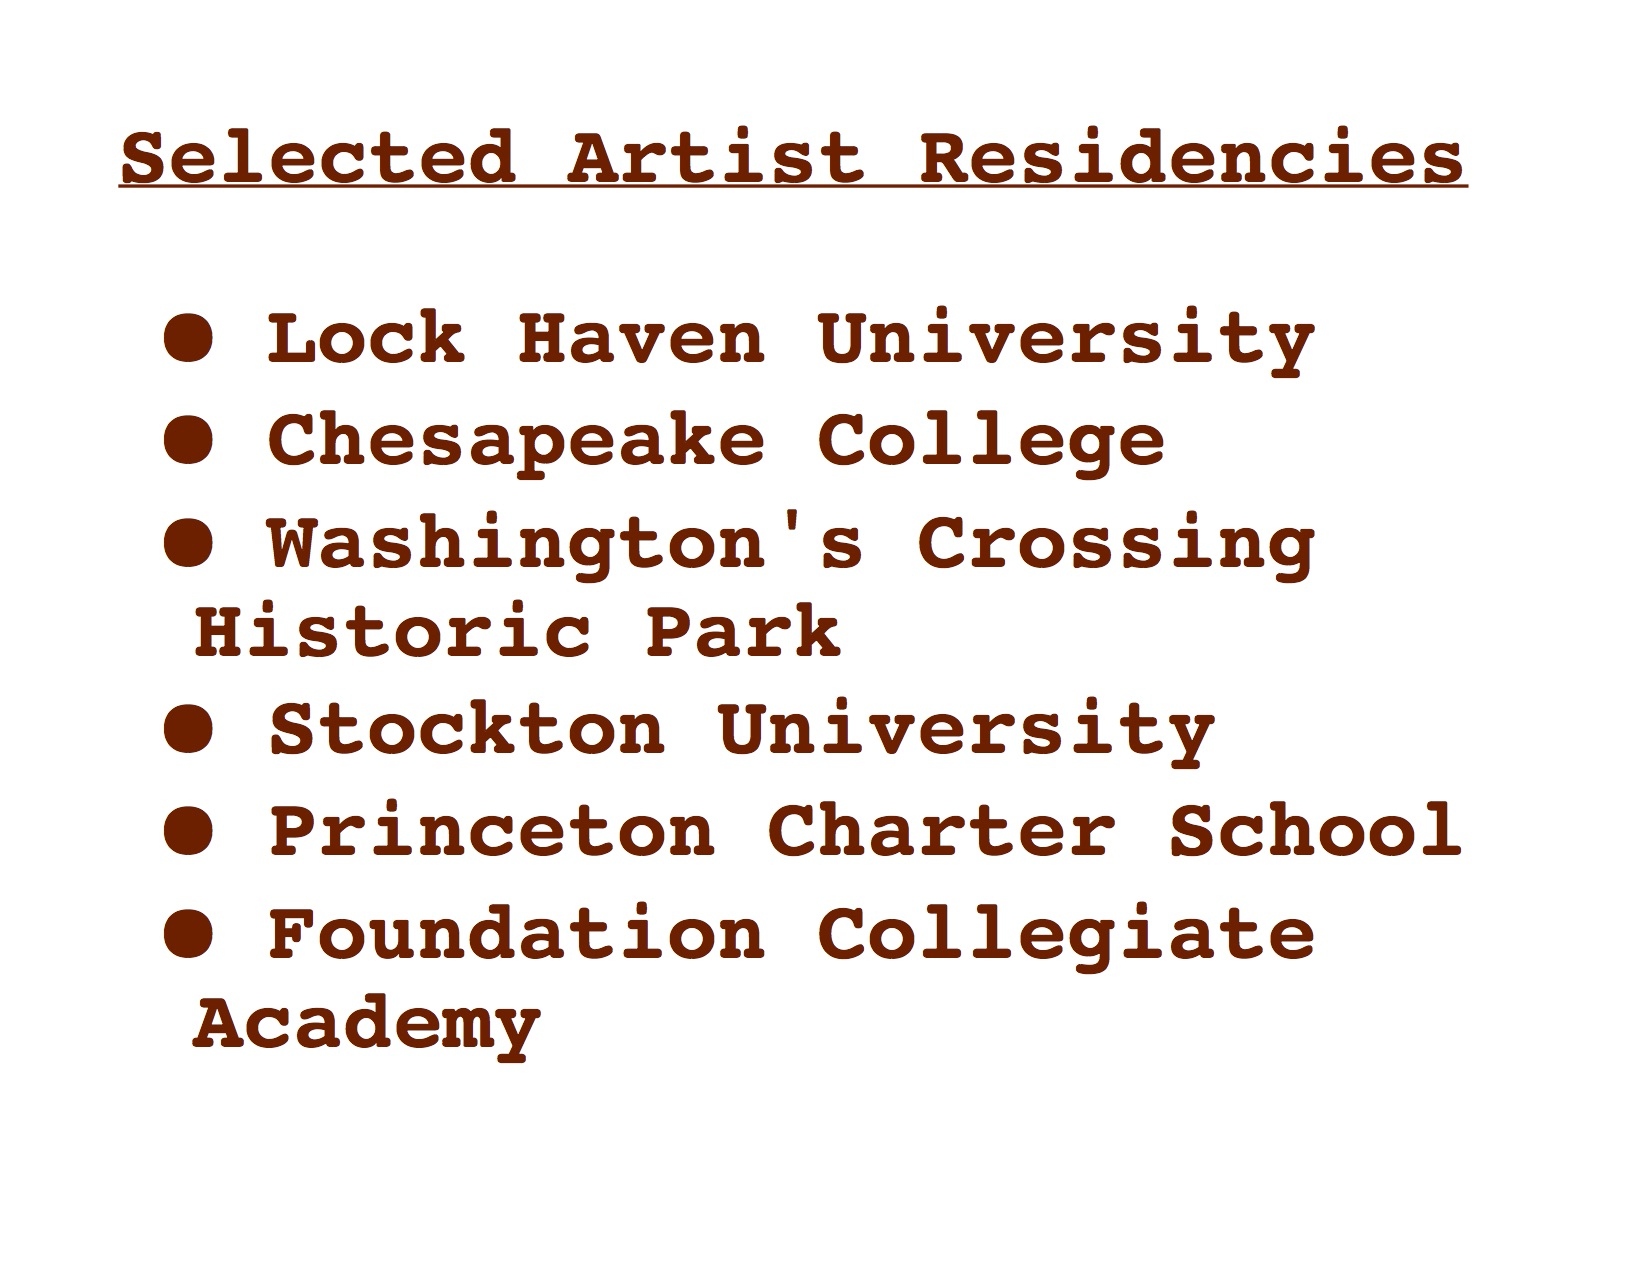 residencies list.jpg